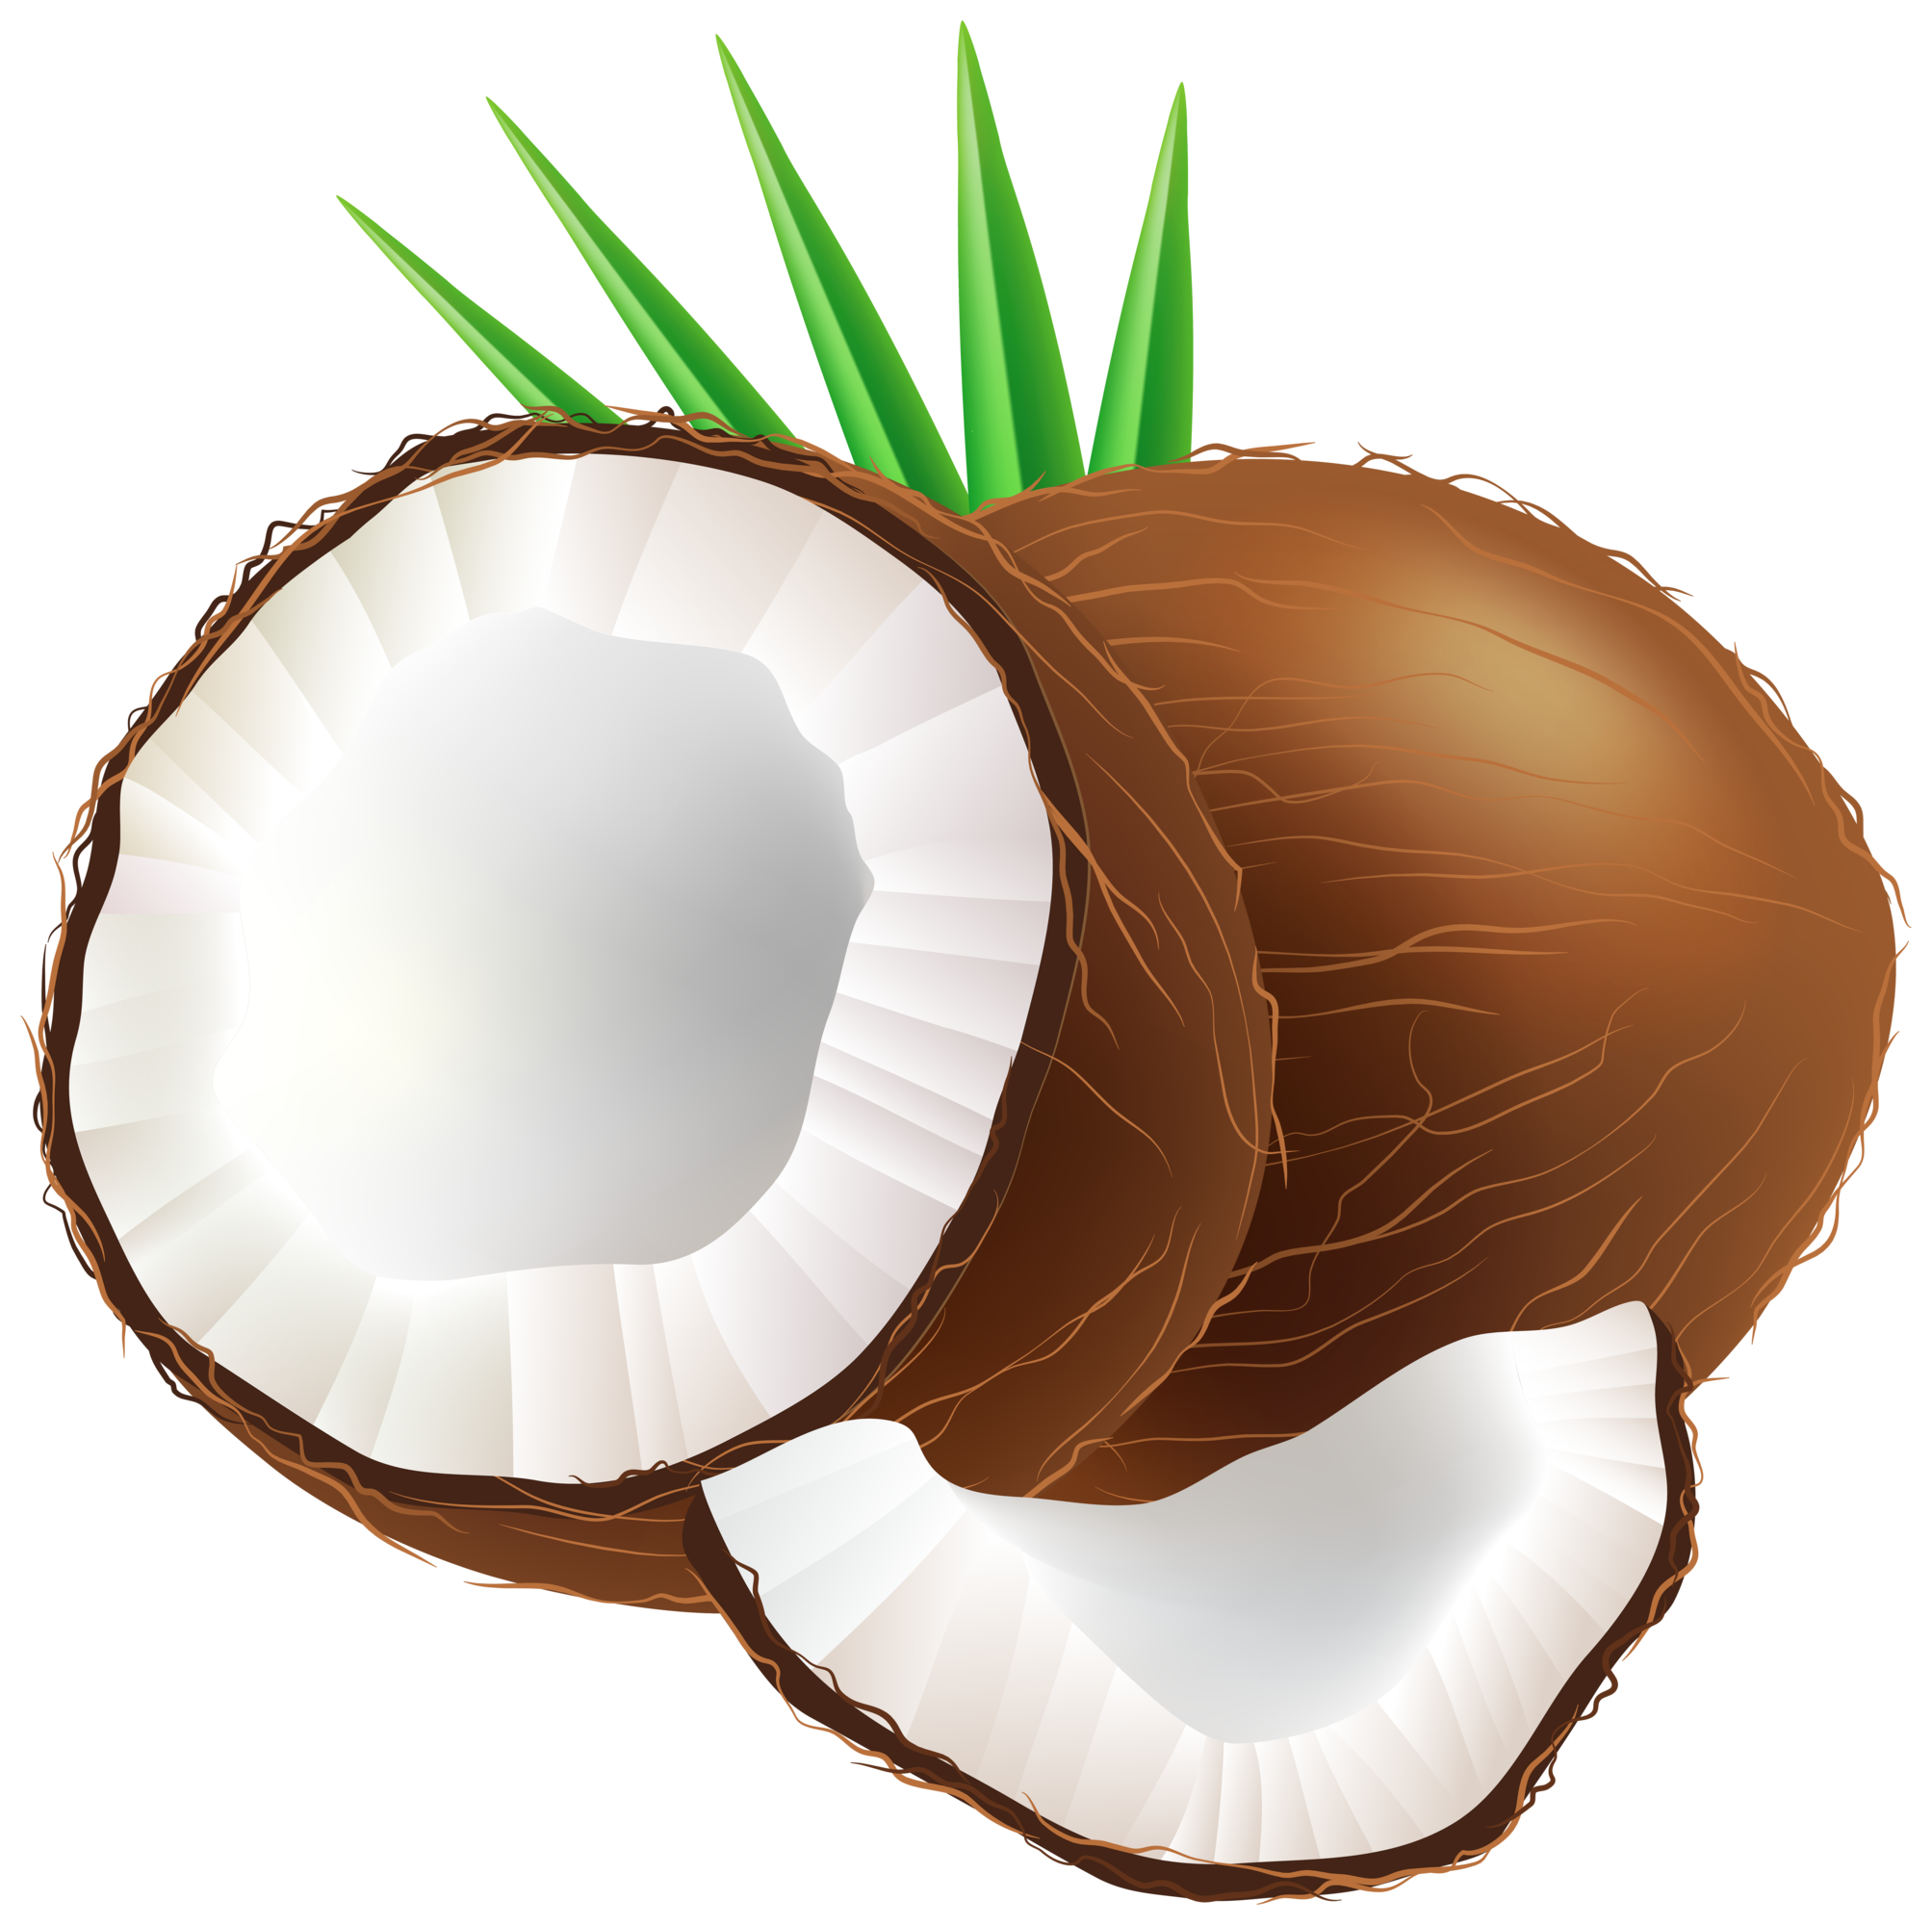 Coconut Clipart Transparent.